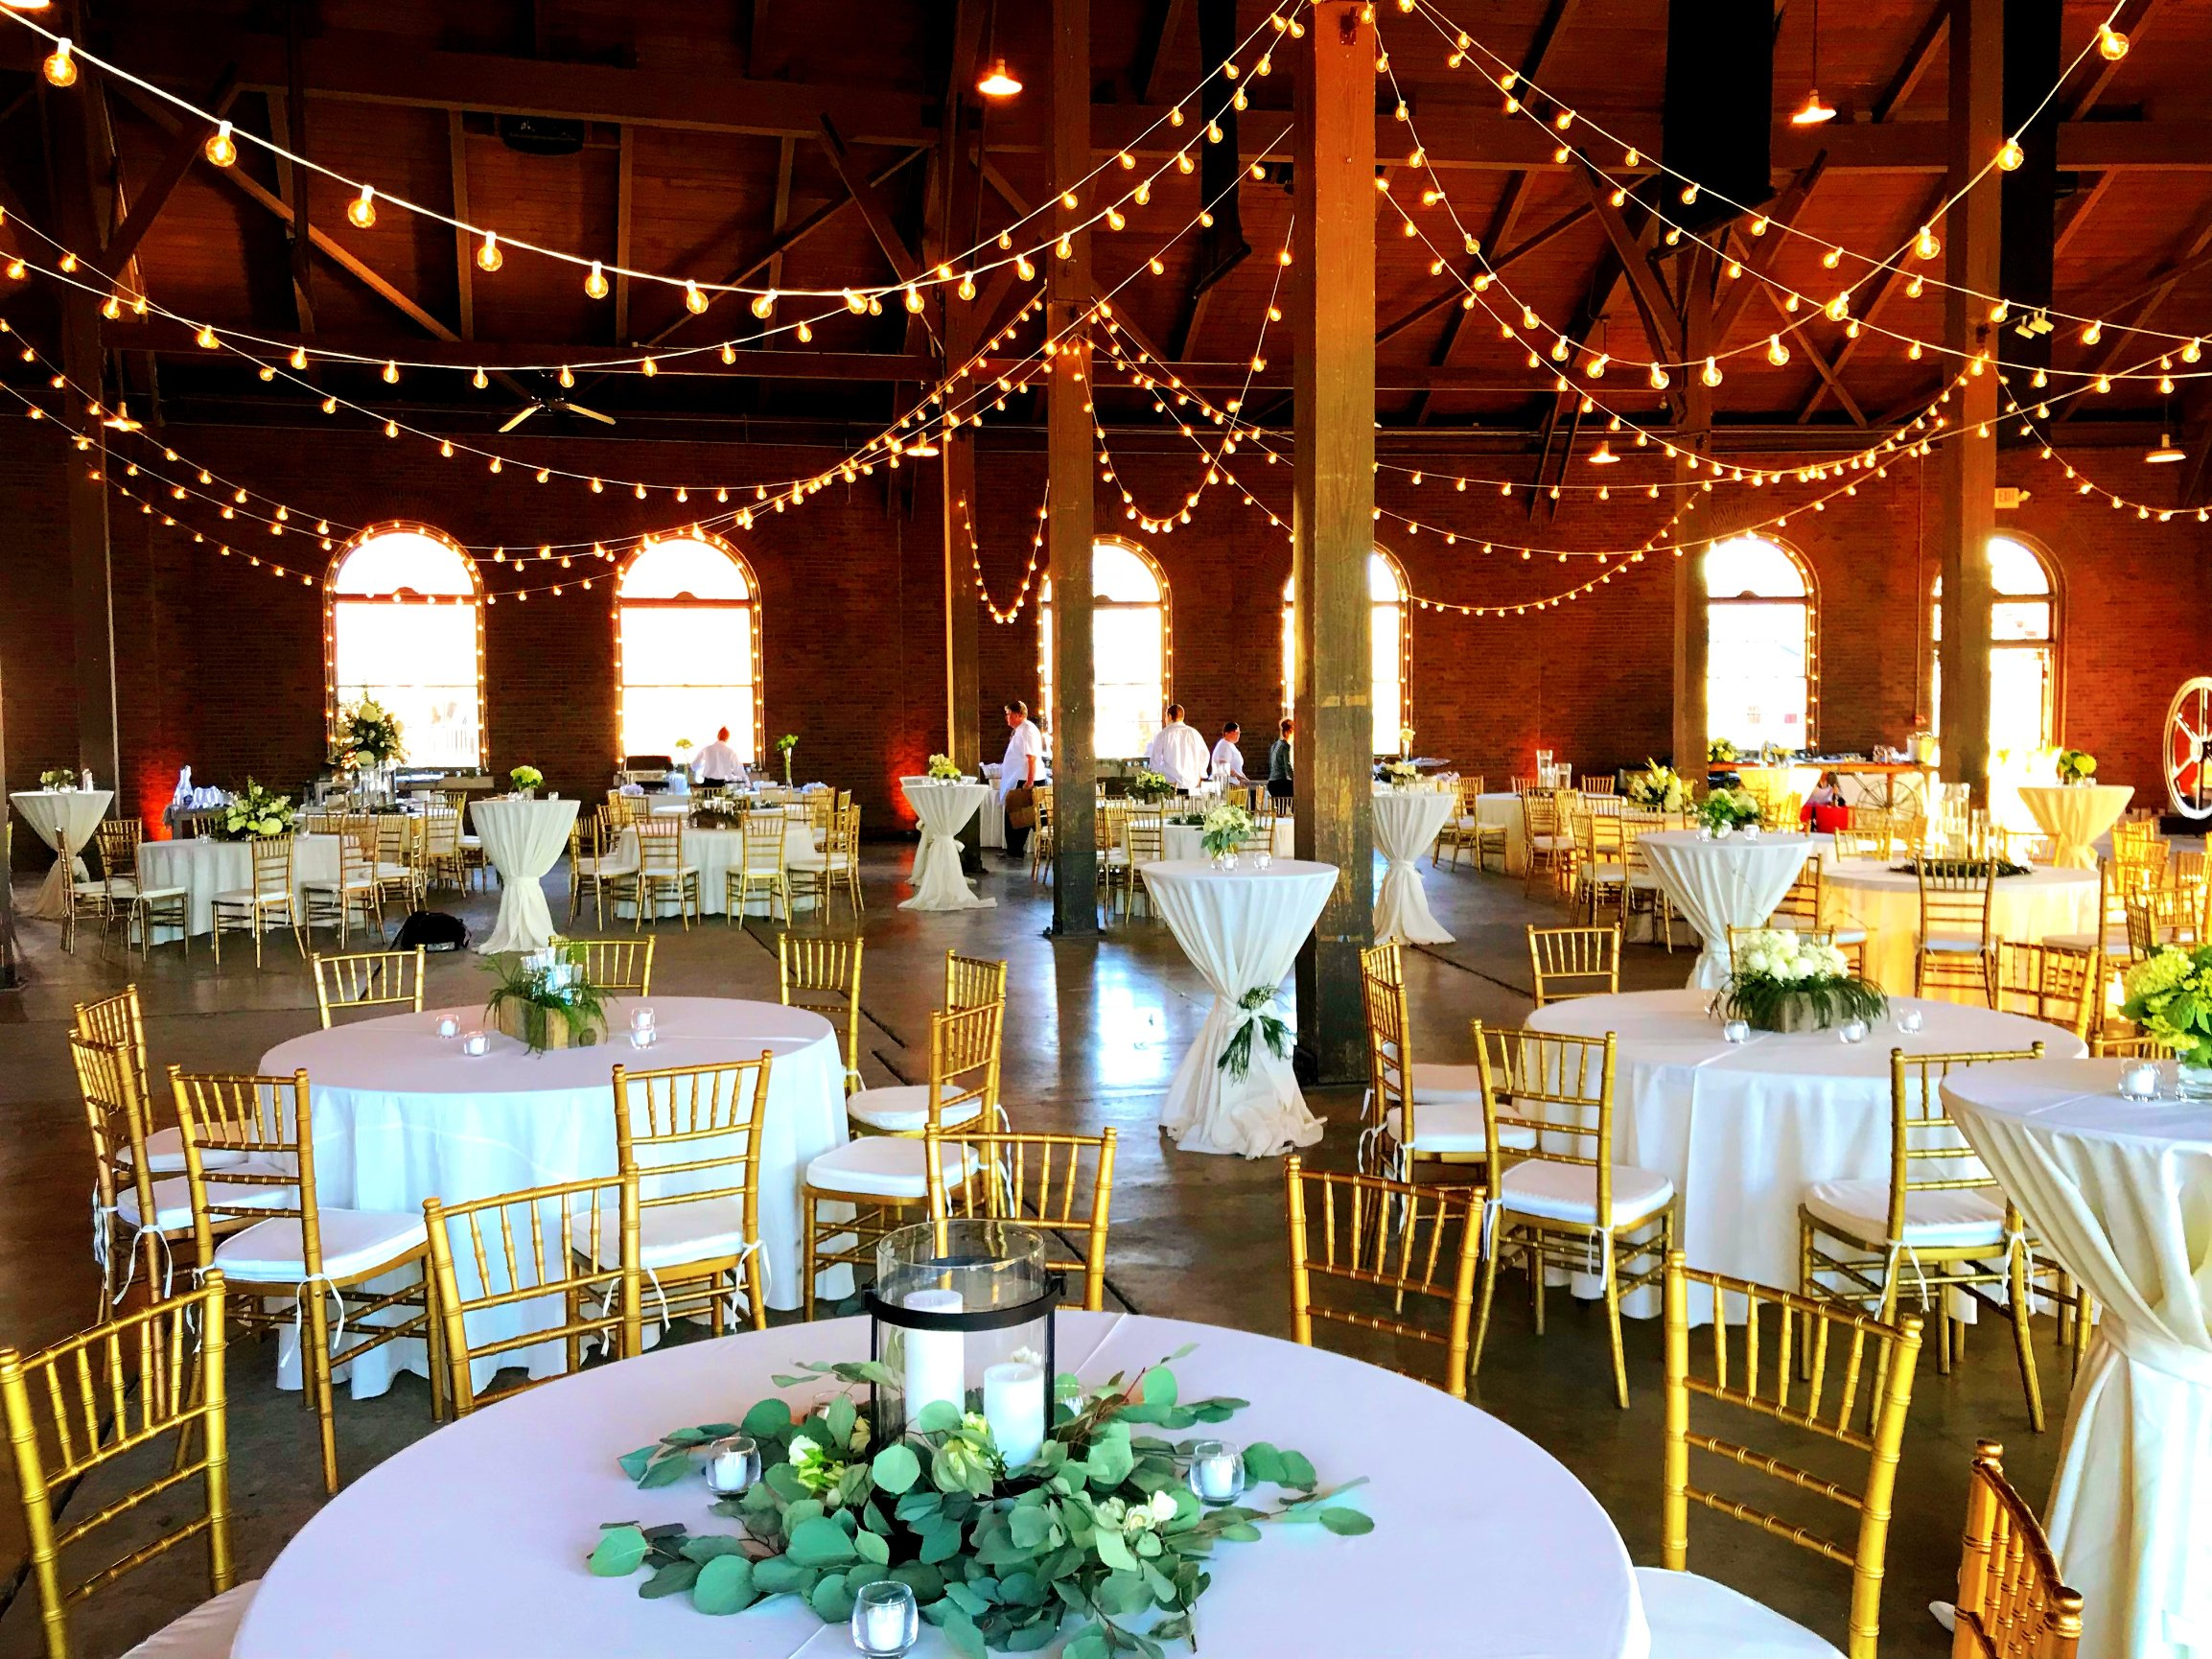 A beautiful wedding event at earlyworks the roundhouse in huntsville alabama with cafe string lights uplights spotlights and more provided by metropolitan